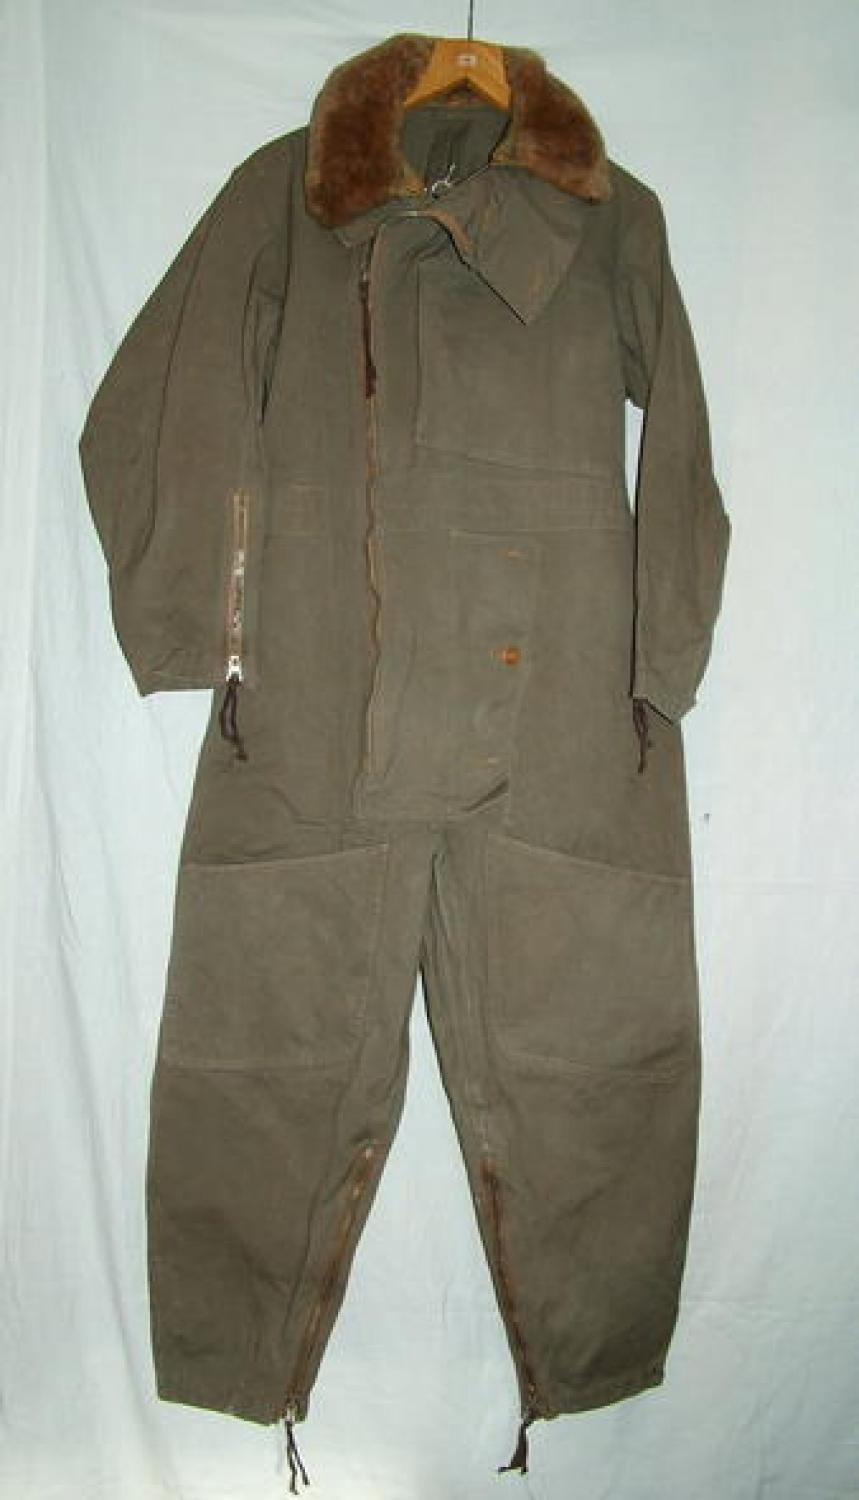 RAF 1940 Pattern Sidcot Flying Suit & Collar